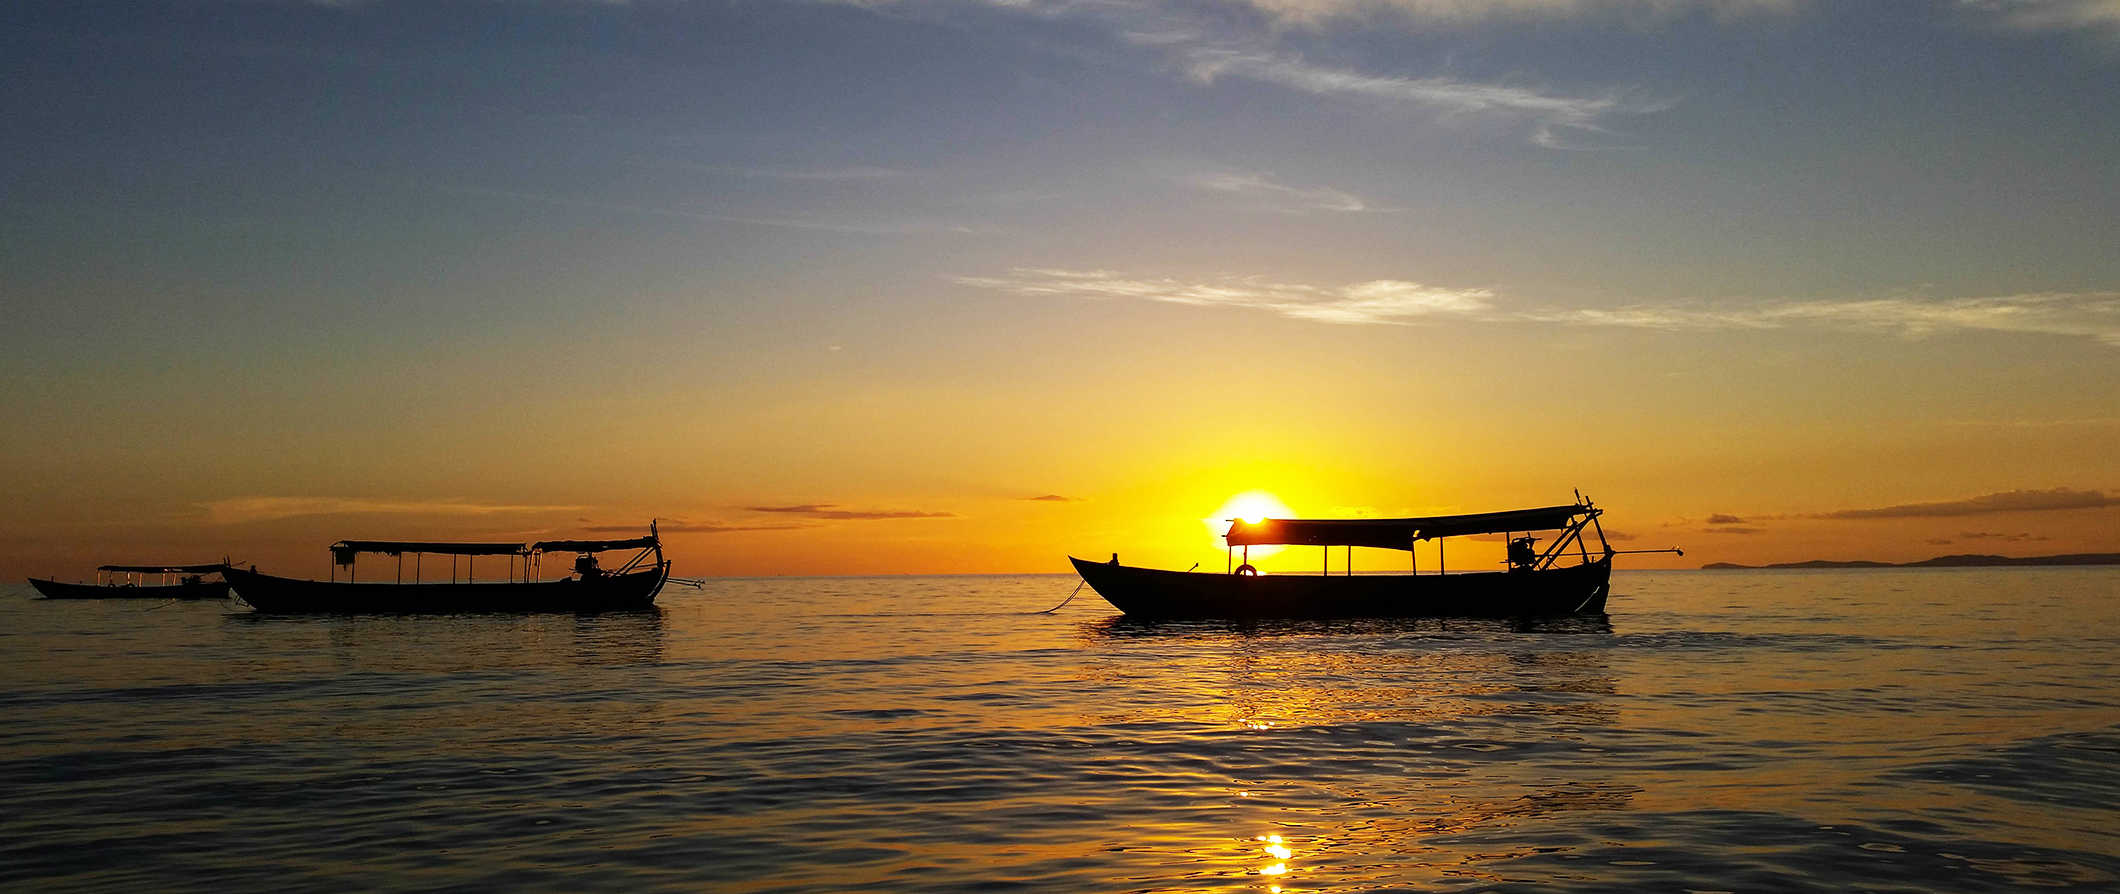 boats at sunset in Sihanoukville